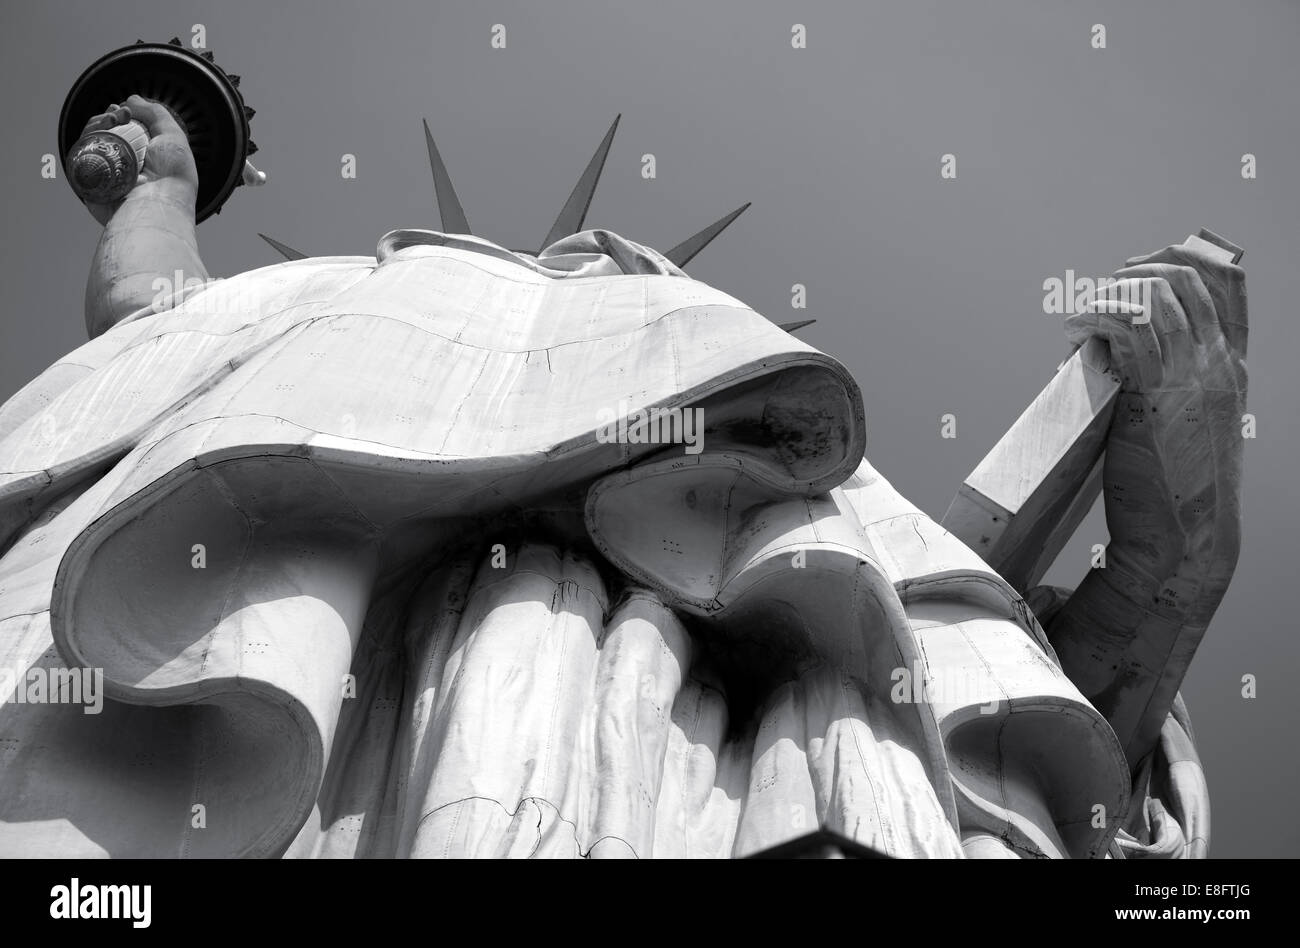 USA, New York State, New York City, Statue of Liberty viewed from below Stock Photo